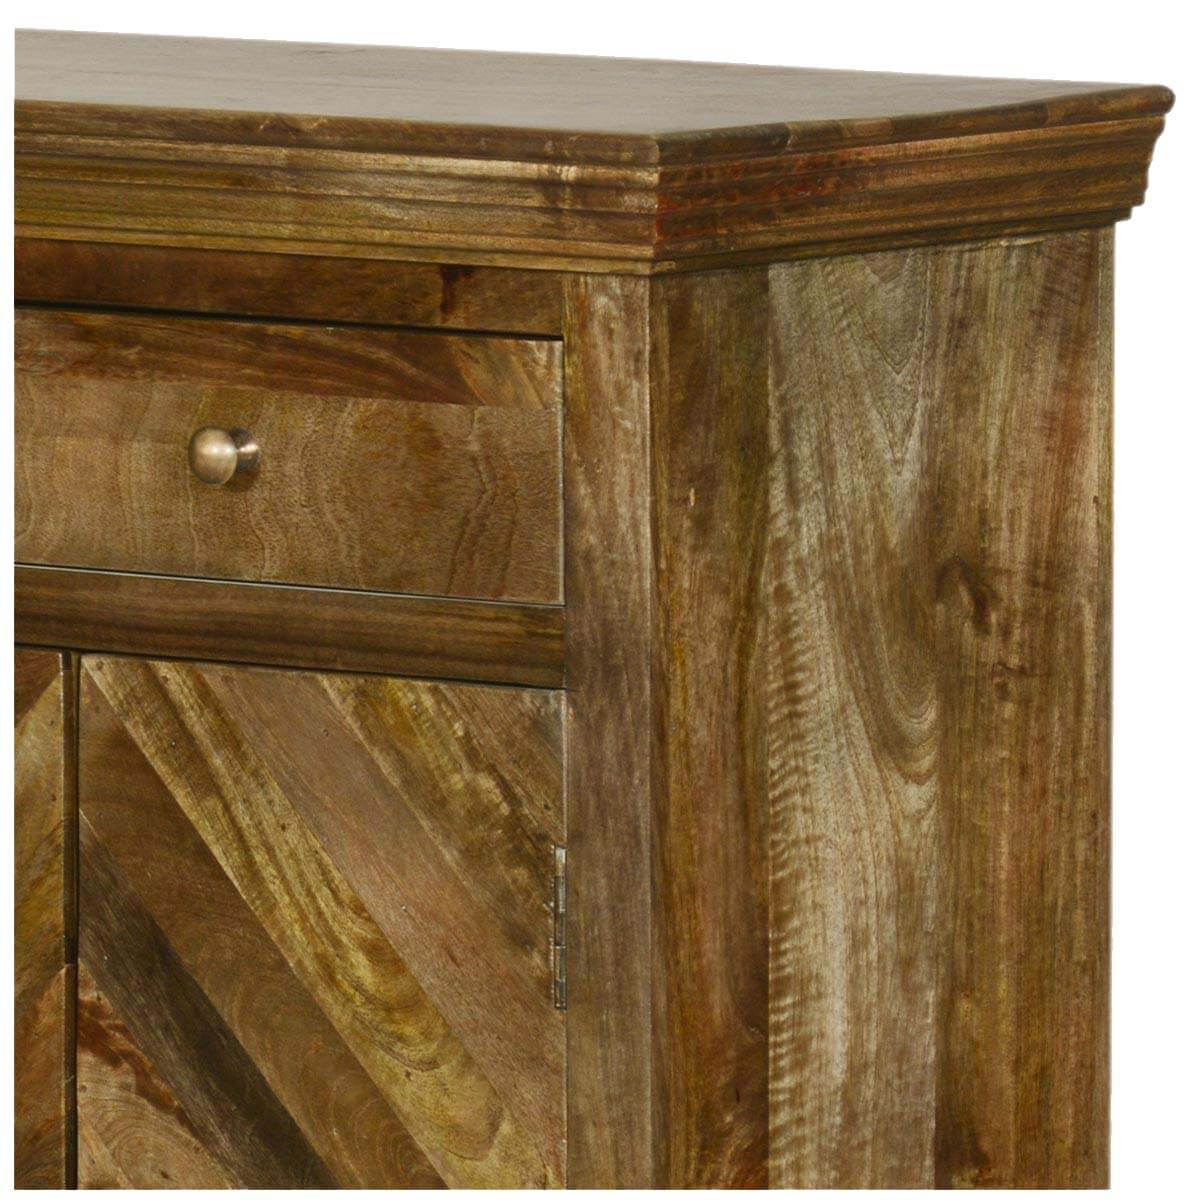 Parquet Diamond Mango Wood 3 Drawer Tall Sideboard Cabinet